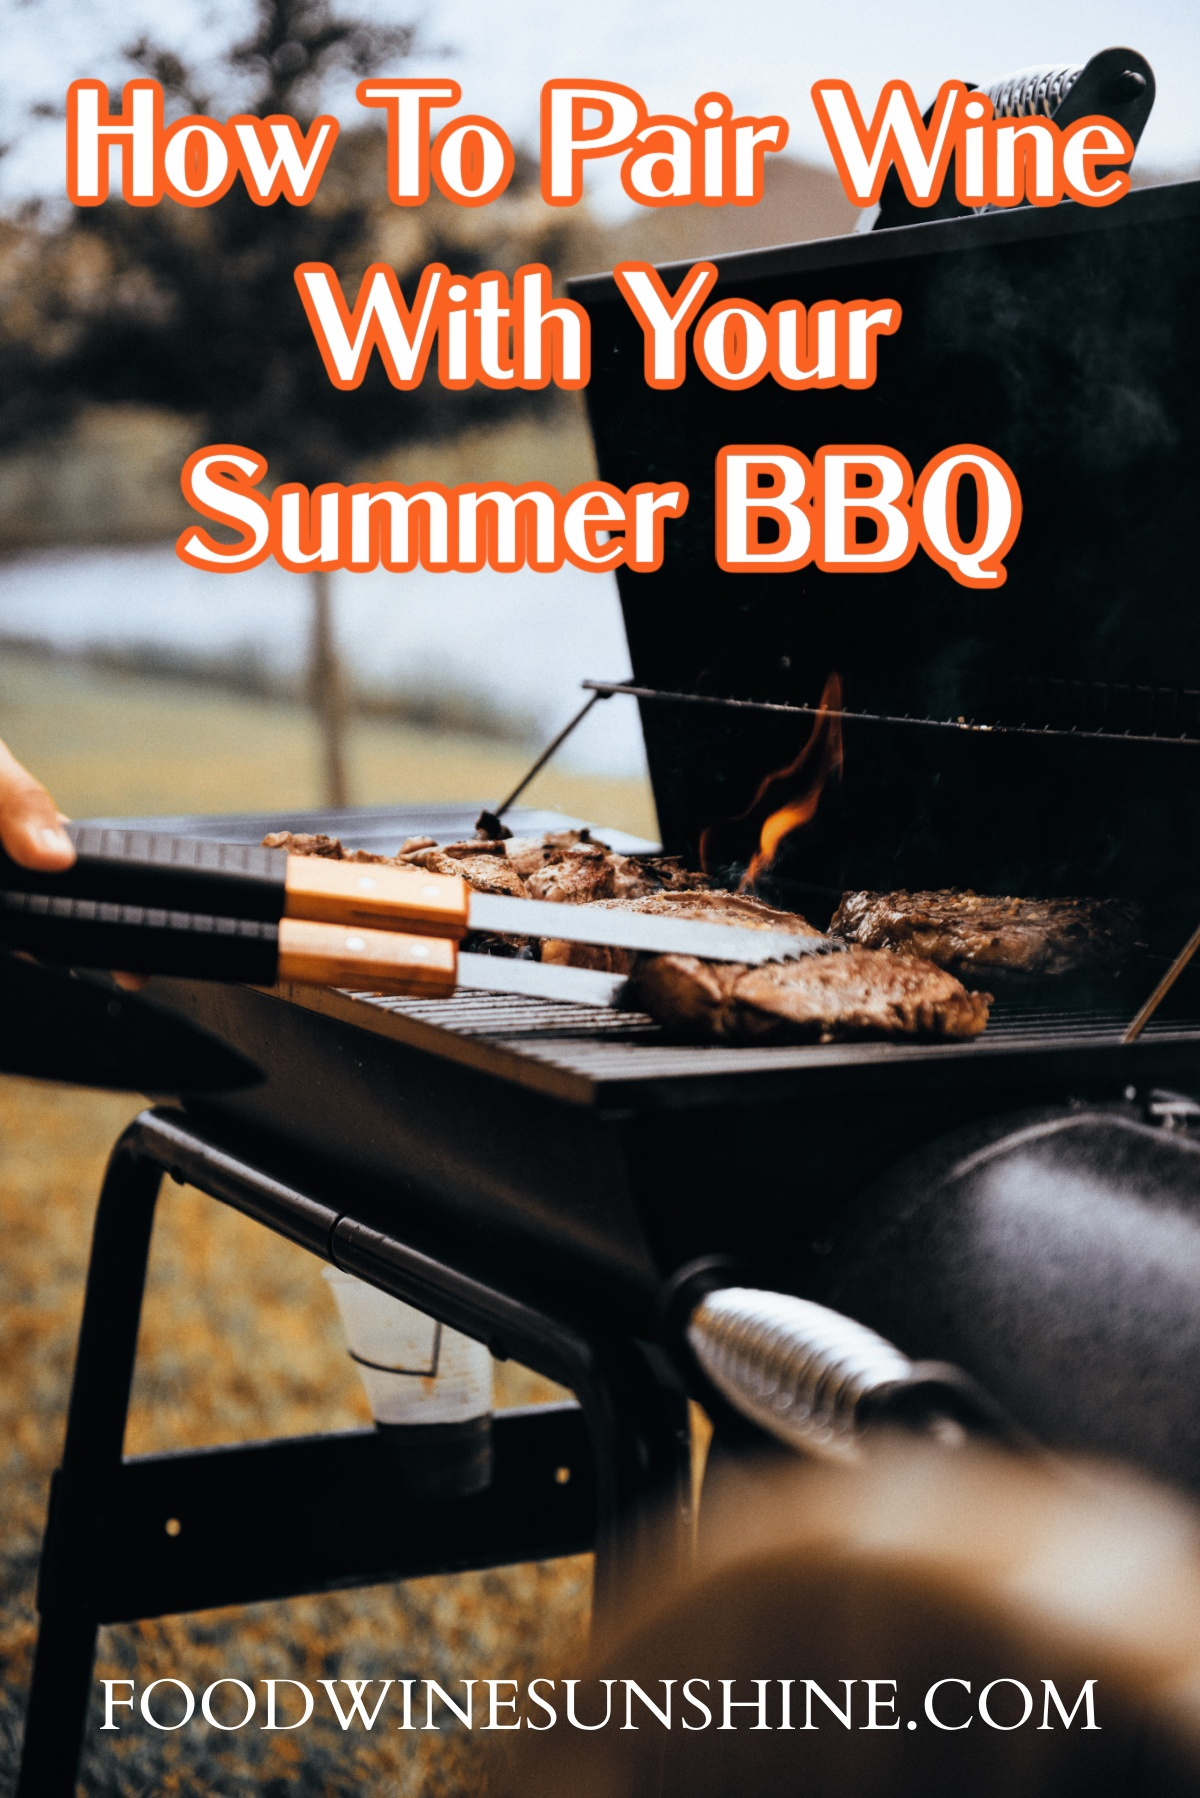 How To Pair Wine with Summer BBQ